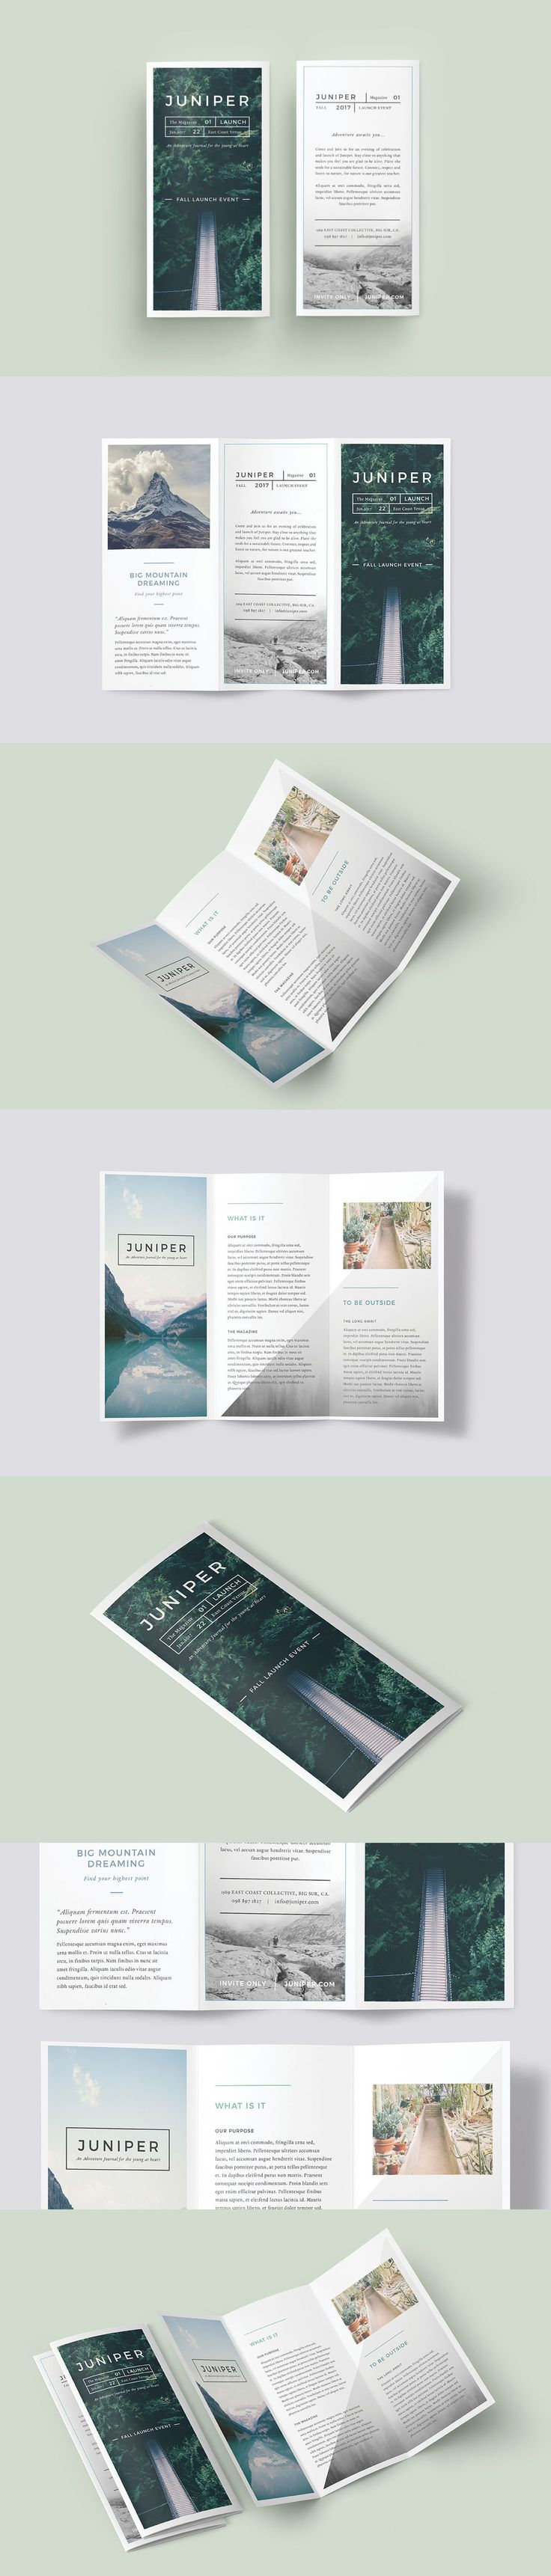 Best 25+ Brochure design ideas on Pinterest | Brochure layout ...